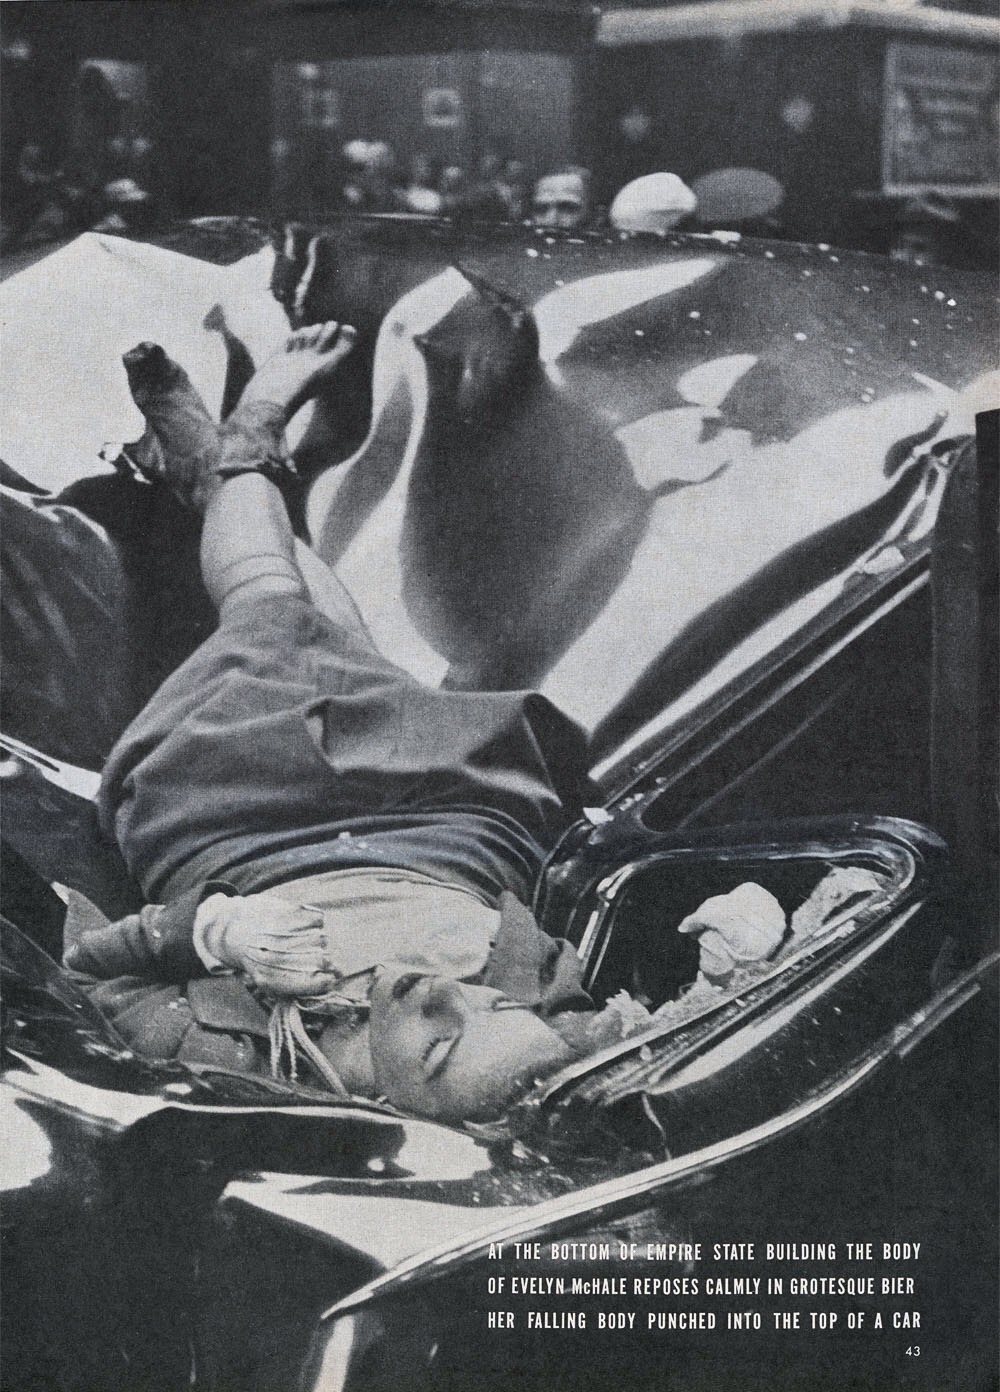 evelyn mchale may 12th 1947.jpg